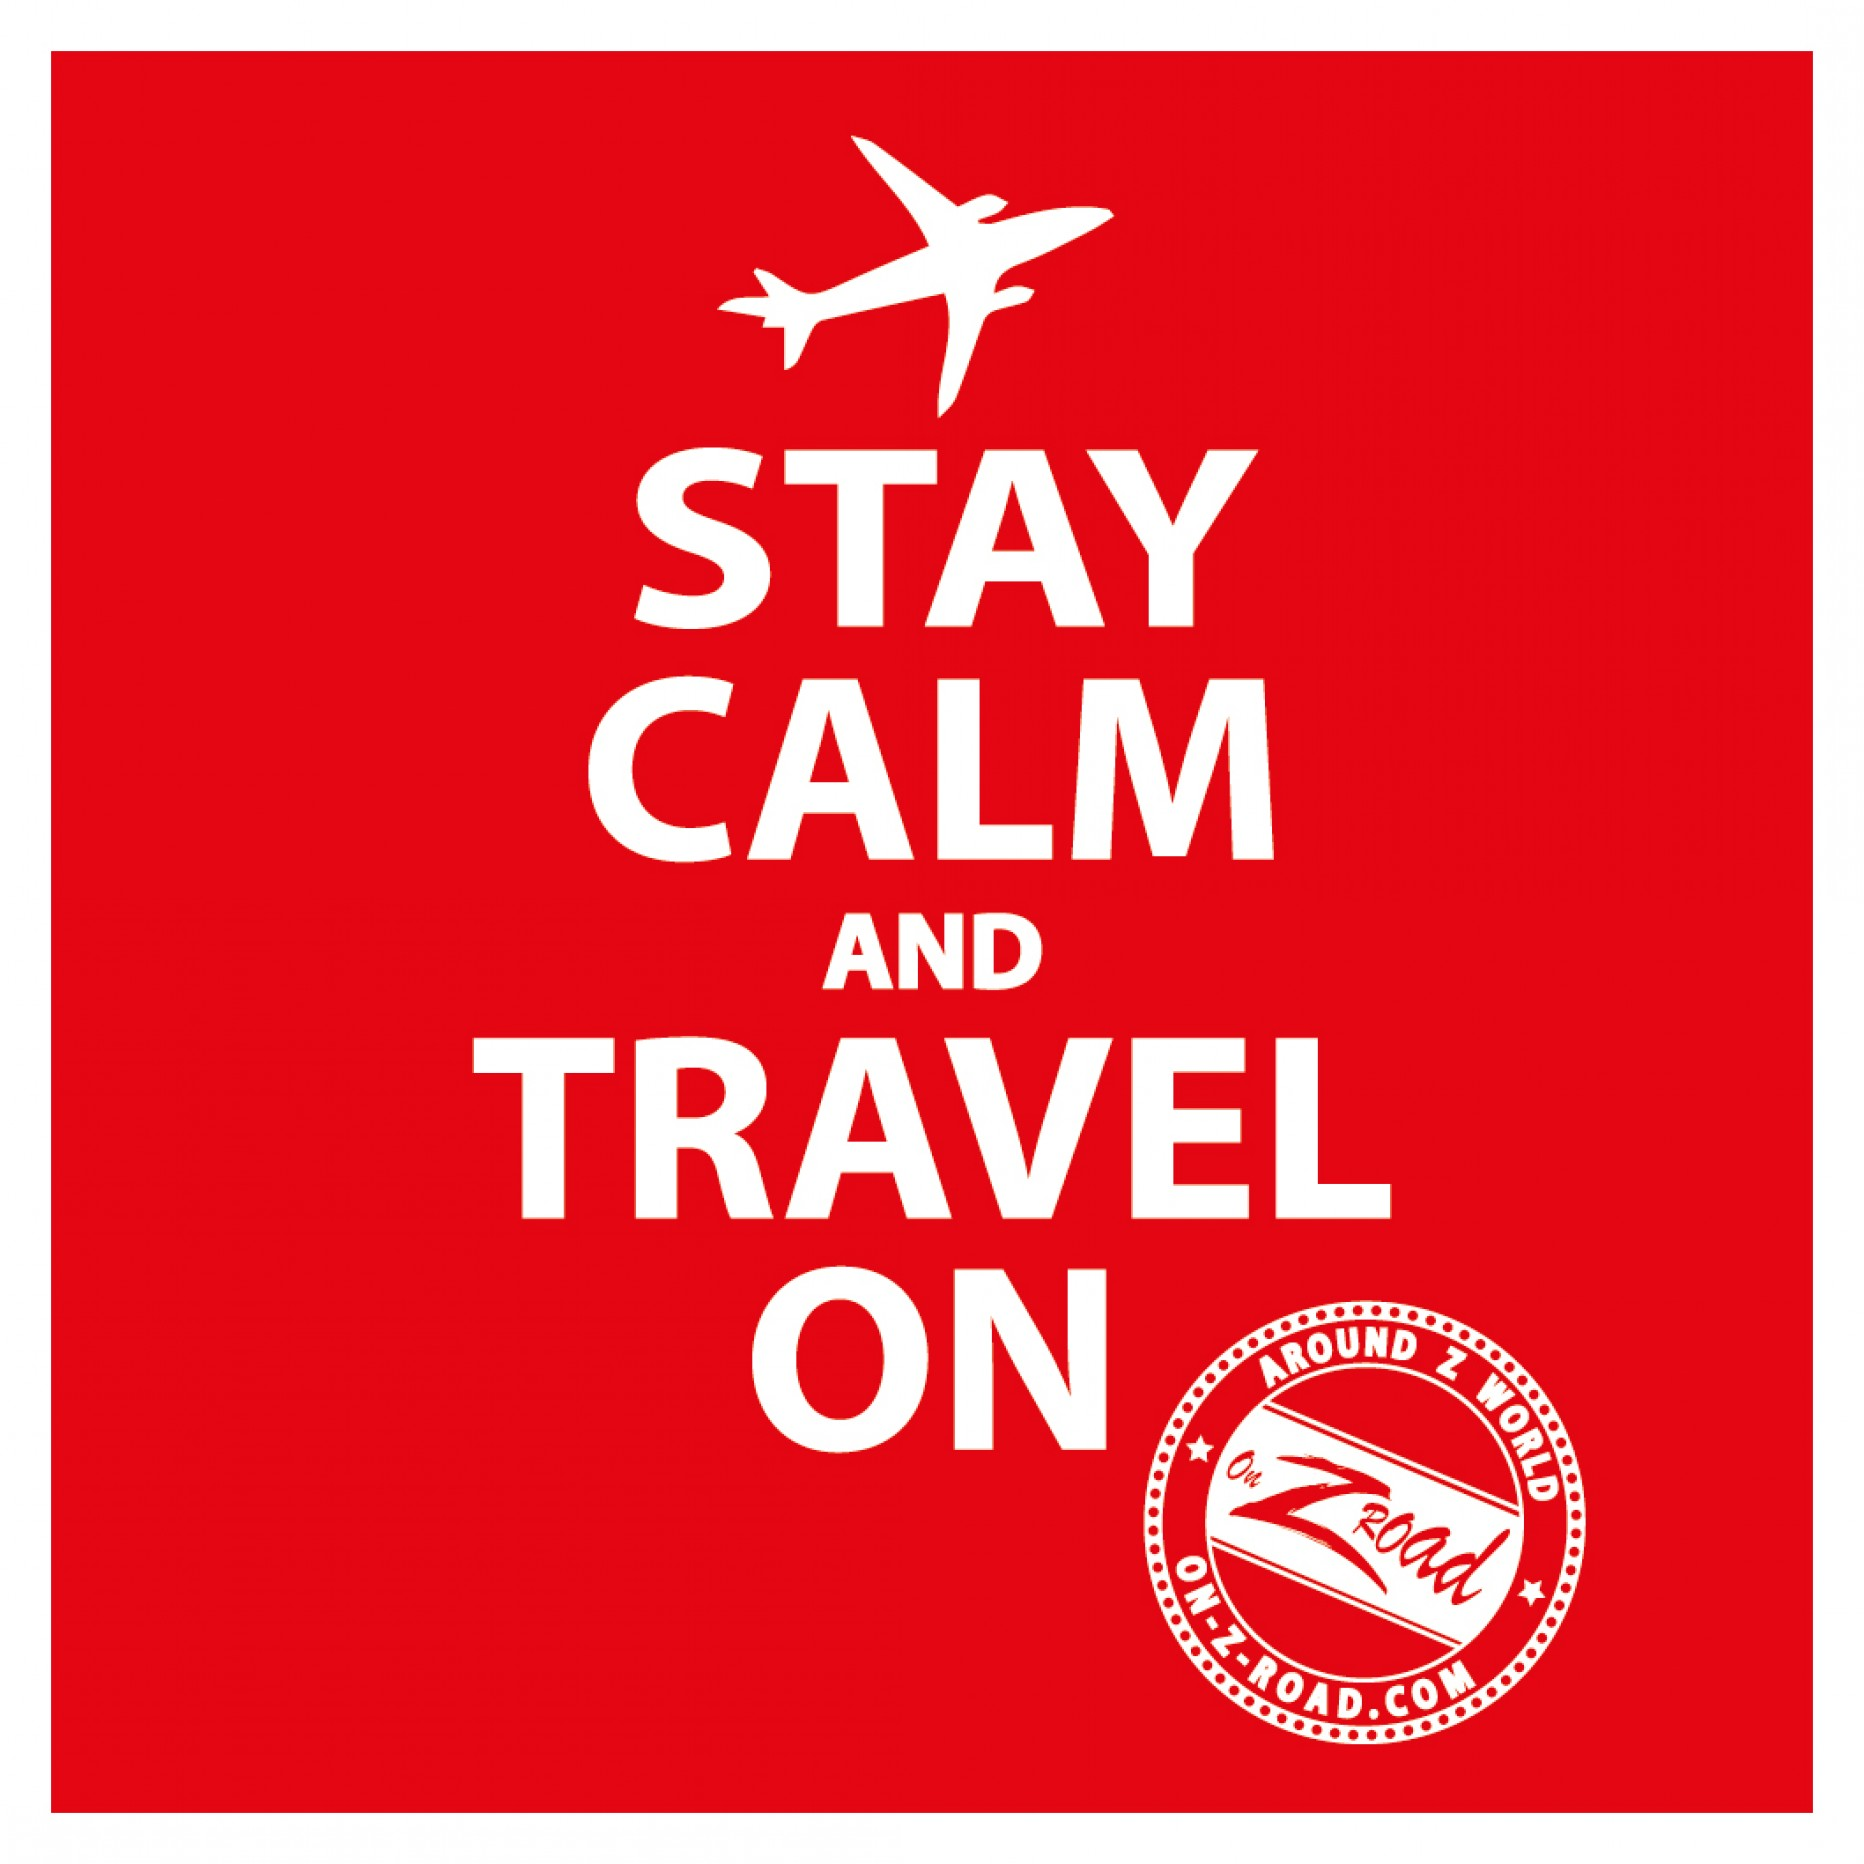 Stay calm and travel on